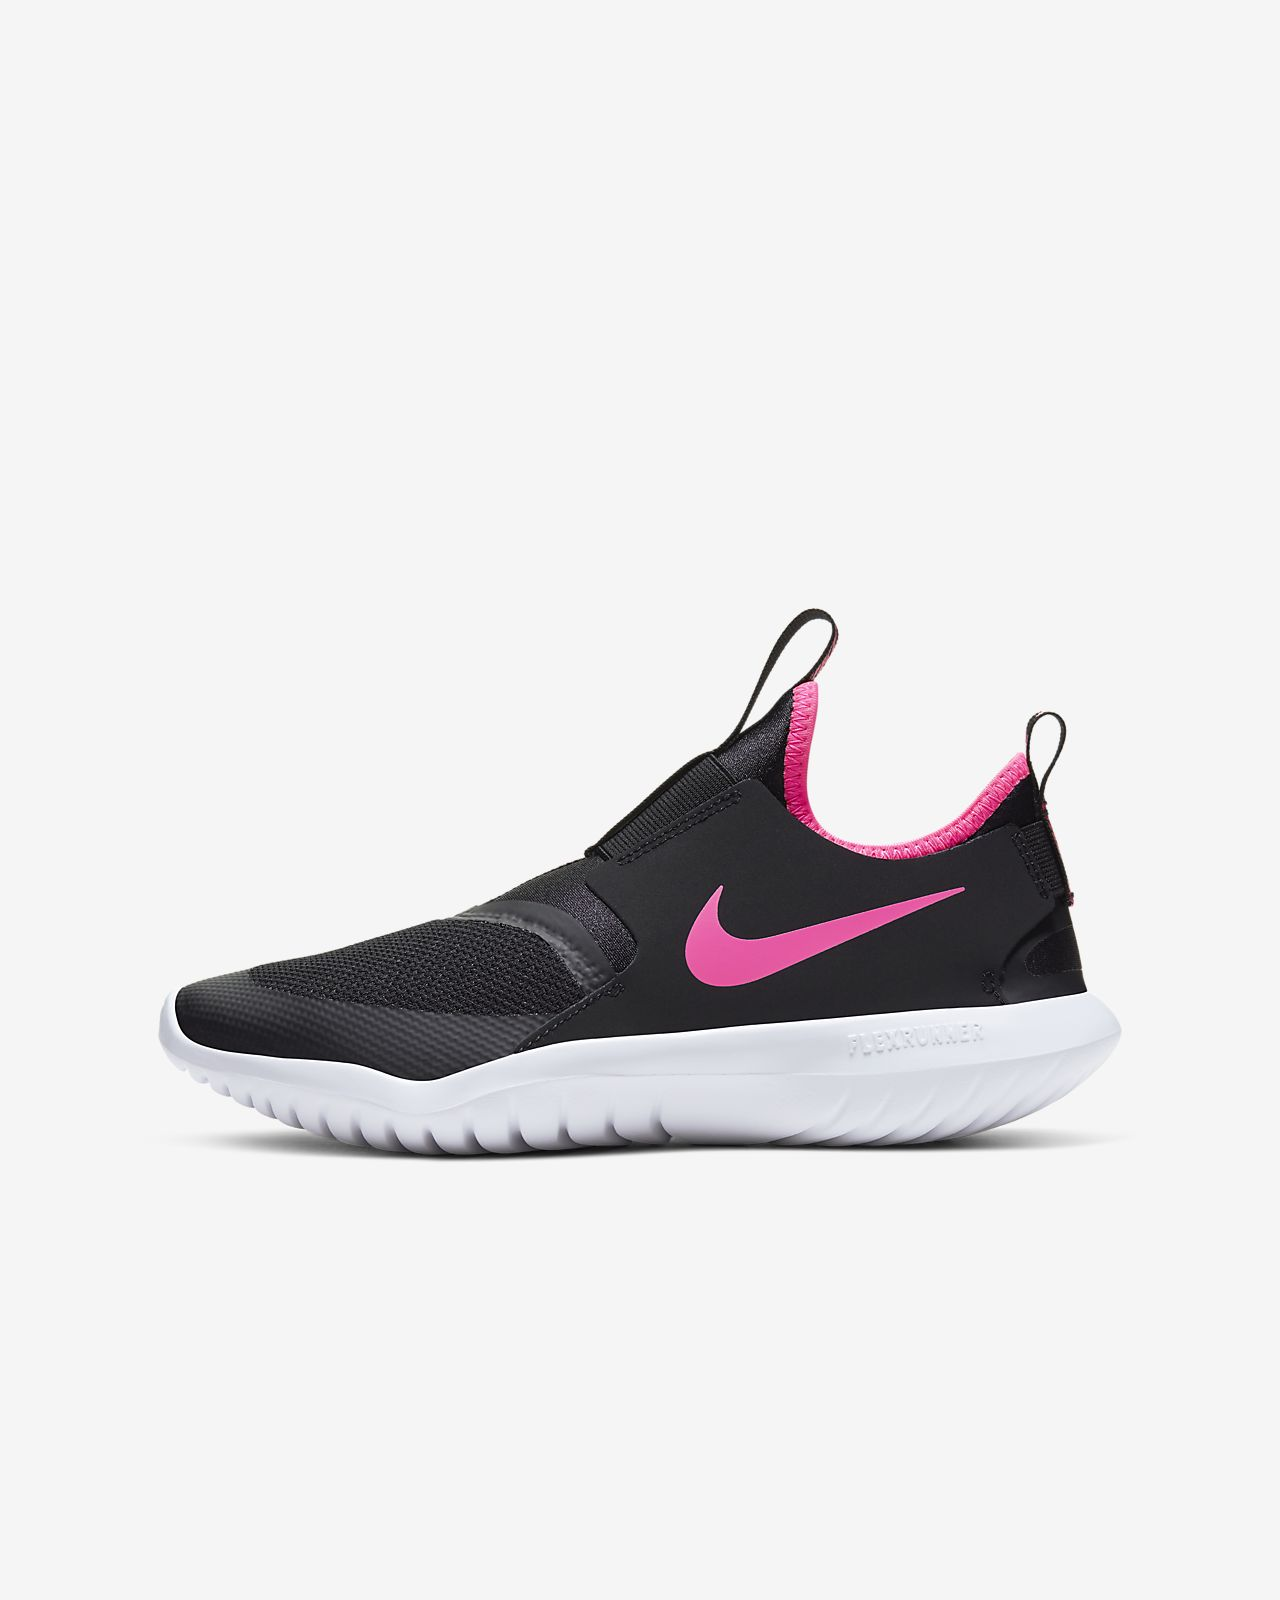 grossiste 6d2c5 14ec0 Nike Flex Runner Big Kids' Running Shoe